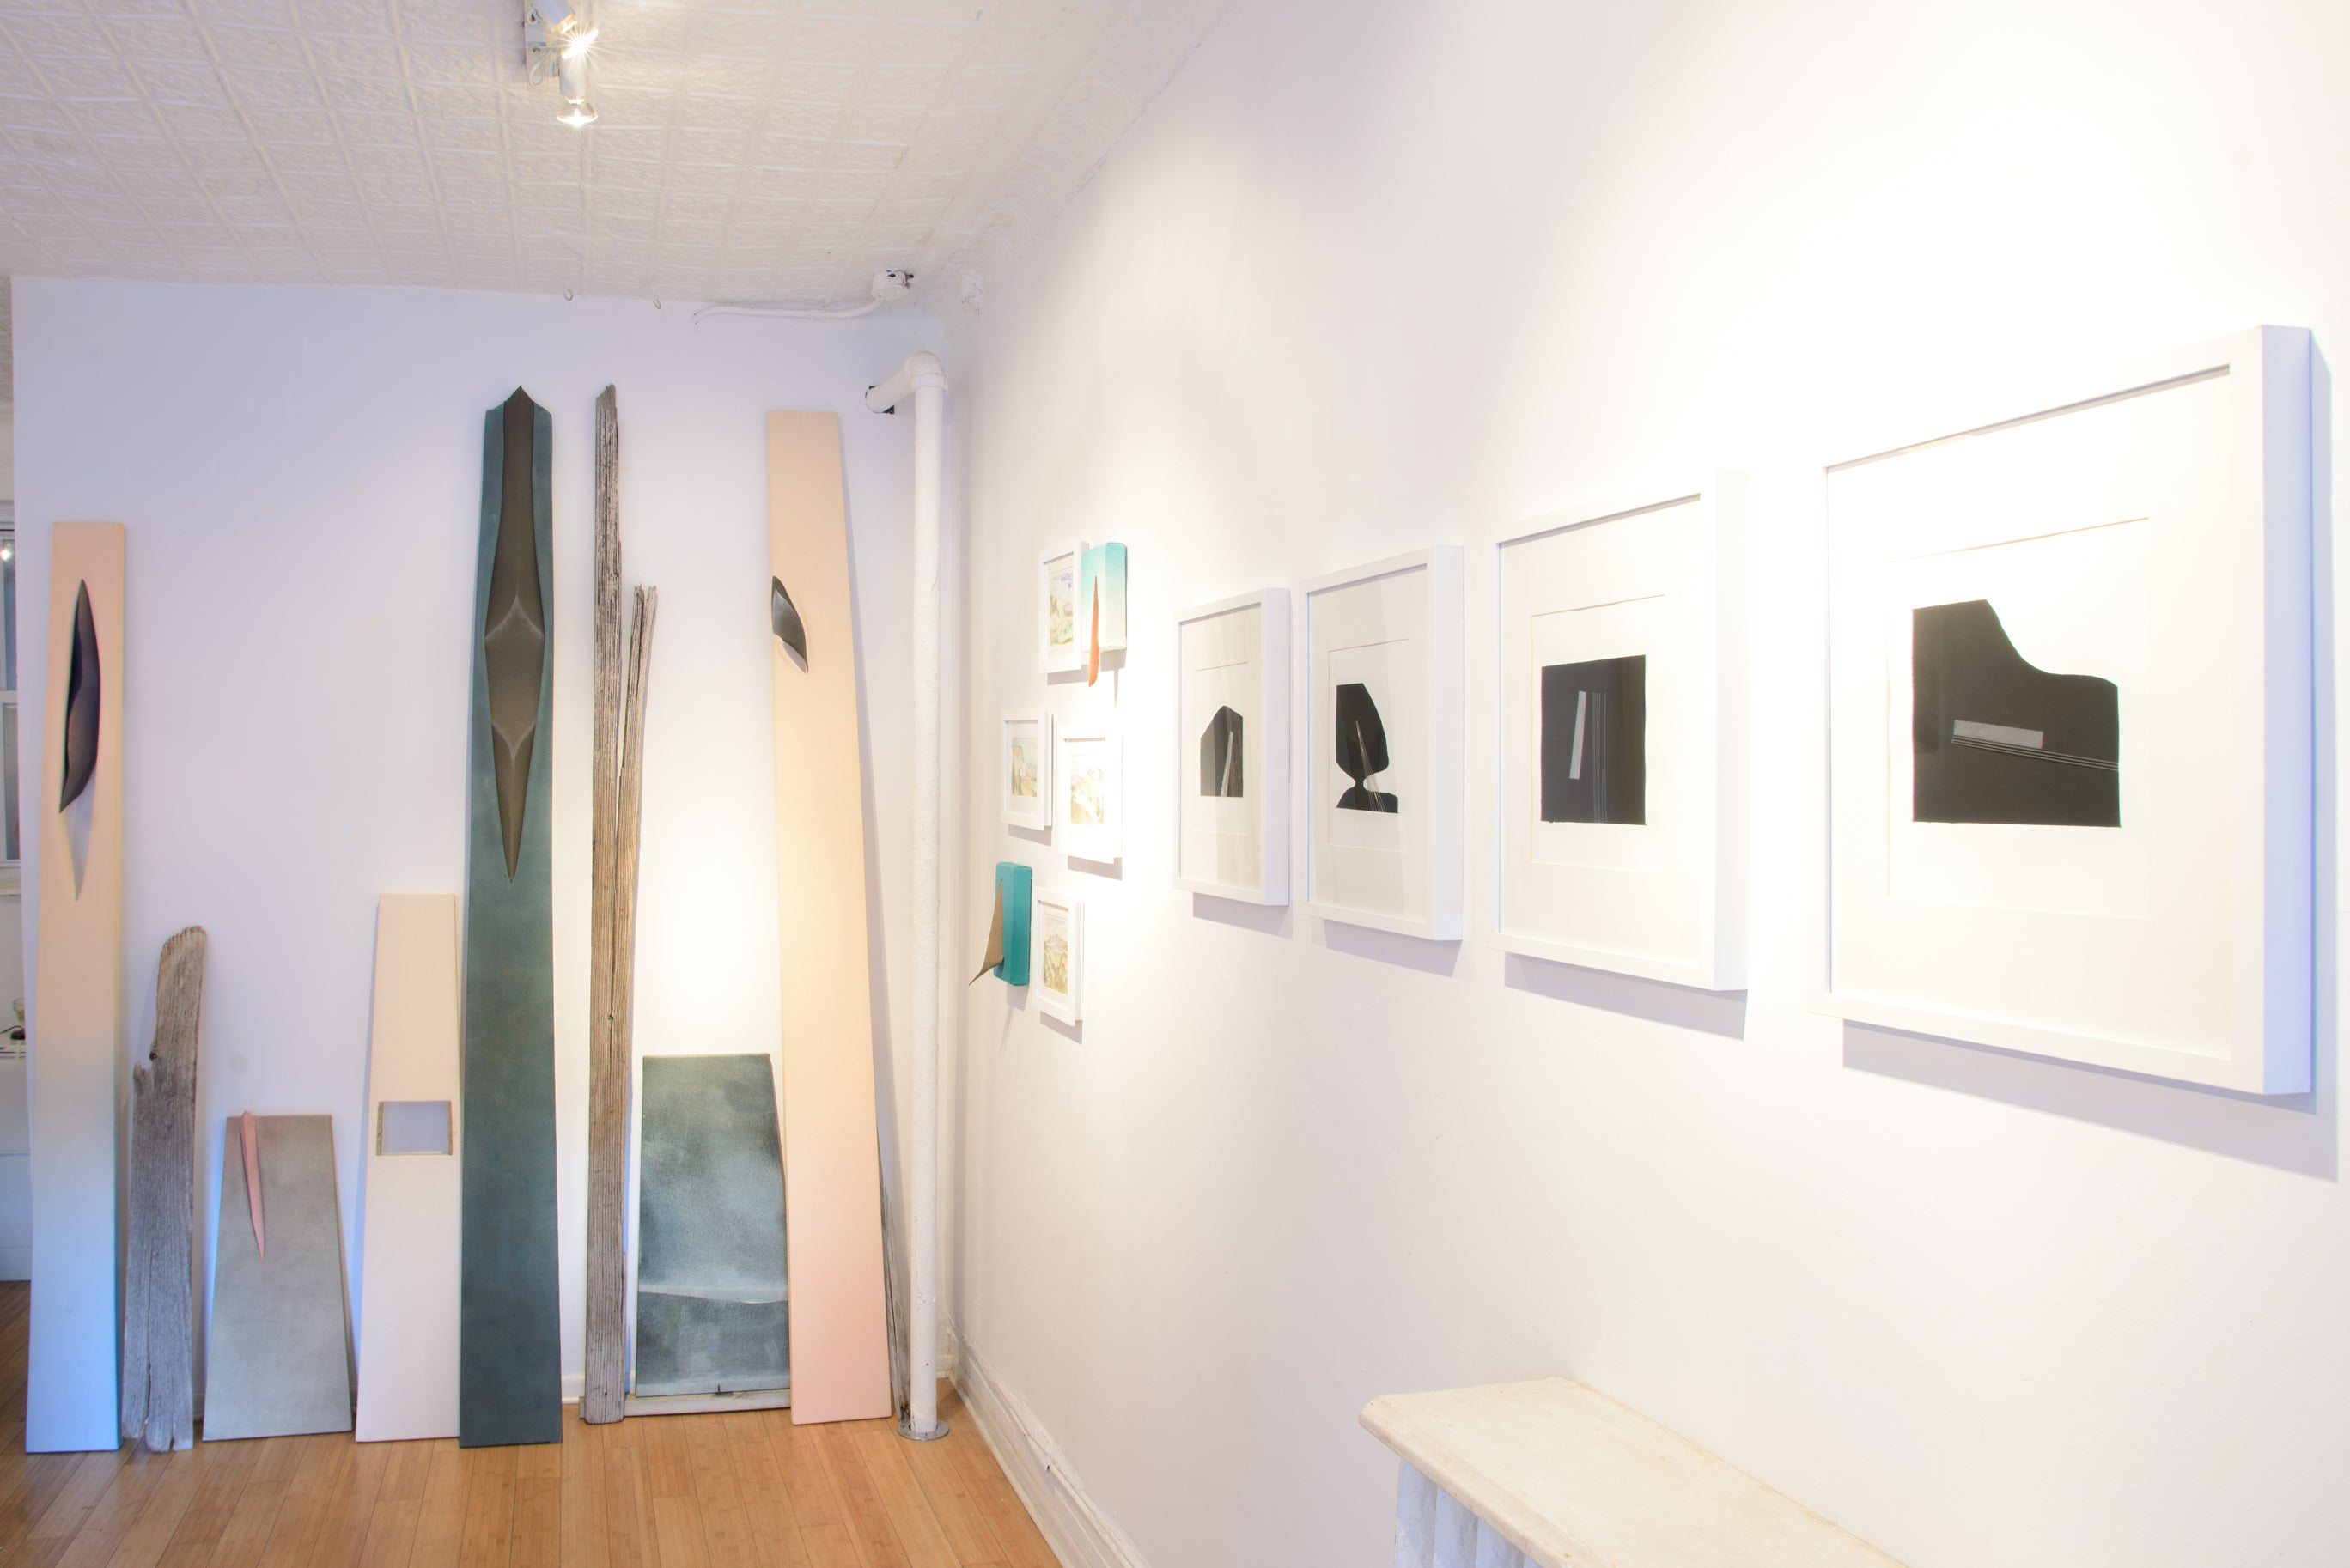 More About Ground Floor Gallery